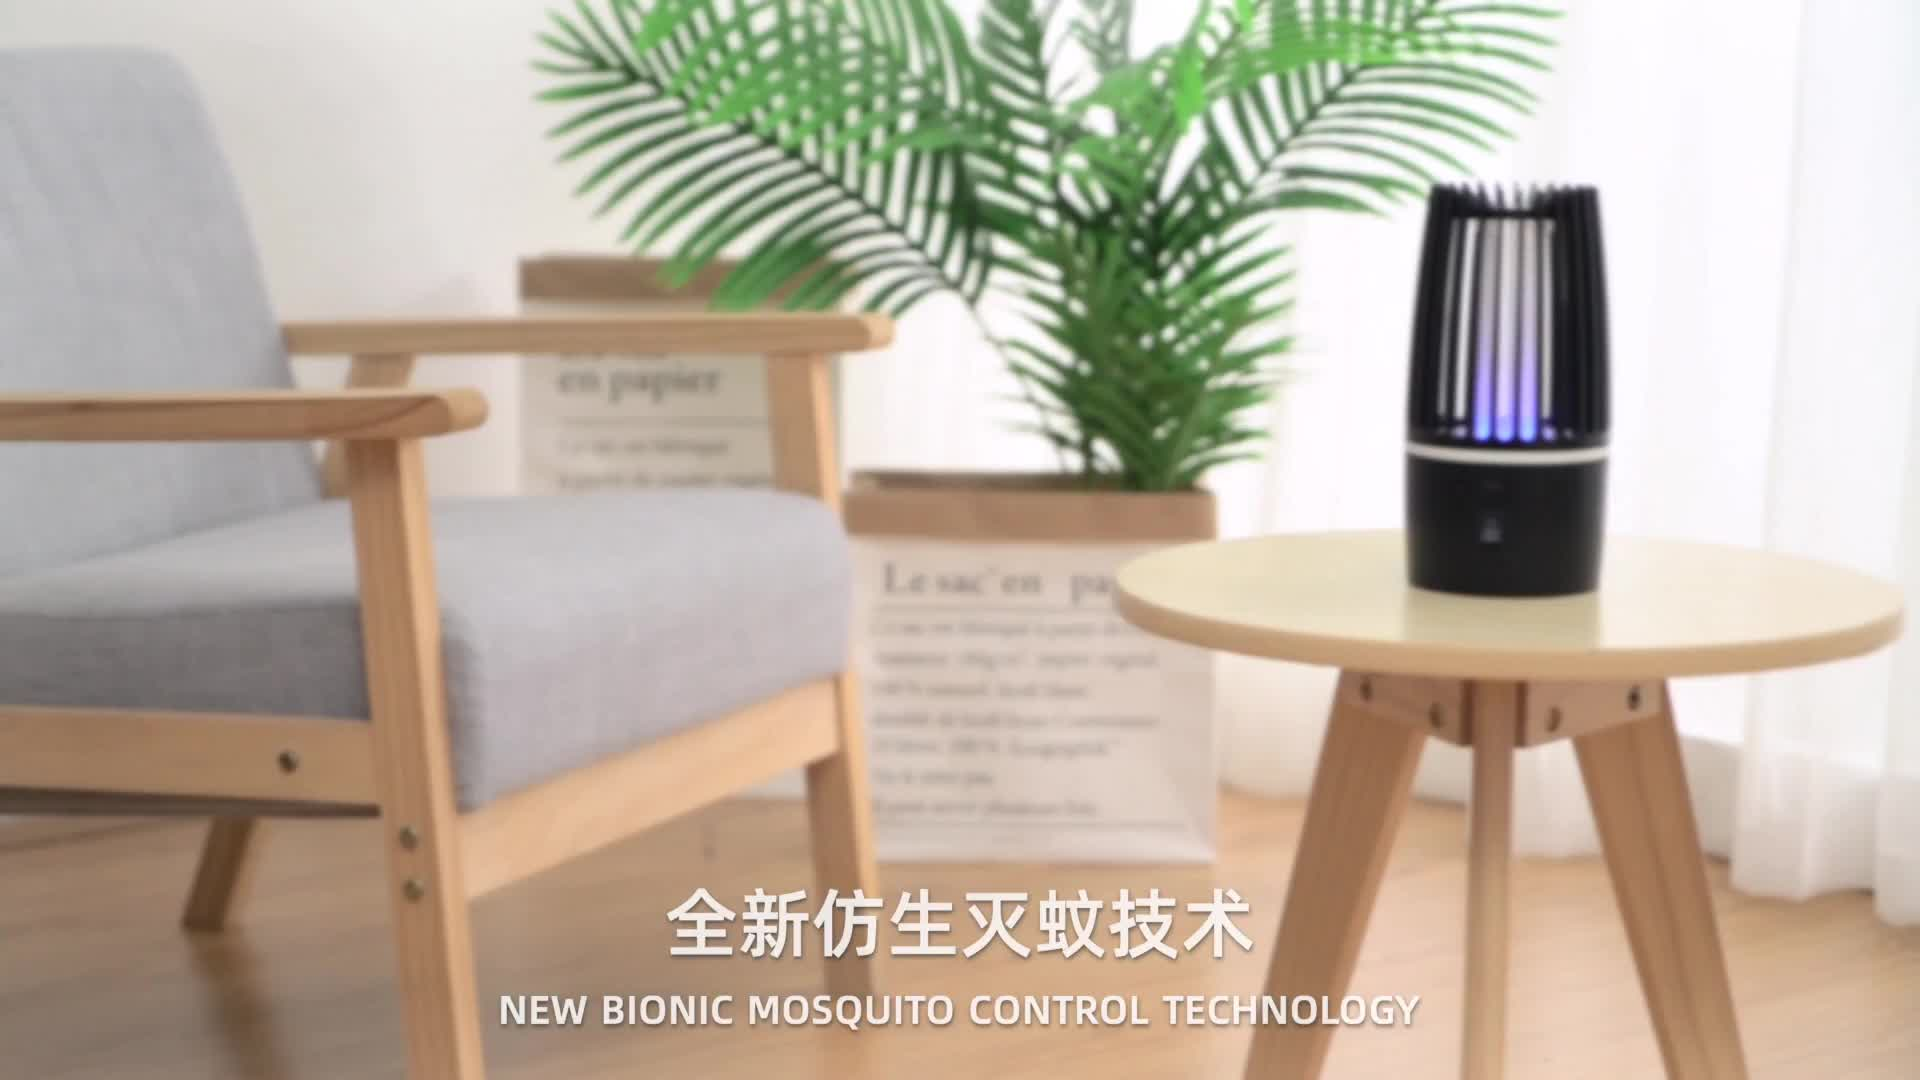 Electronic Chargeable Home Appliances- Lamps Portable Usb Charging Outdoor Mosquito Killer Lamp